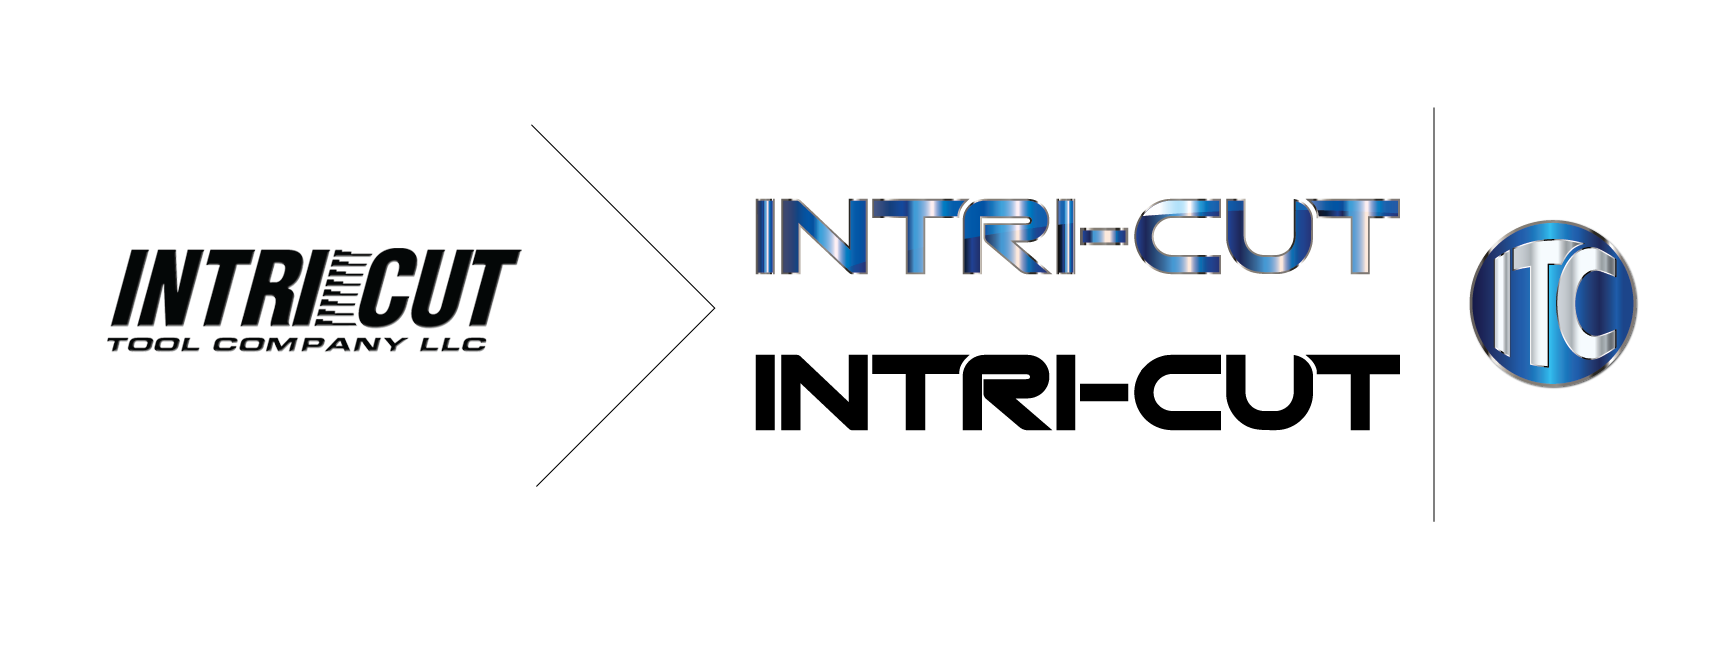 Case Study 2: We recently adapted the Intri-Cut logo to better represent this cutting edge business, adding dimension and icon alternatives. The new look is sharp, sleek, and capable of being simplified and reproduced in multiple applications.